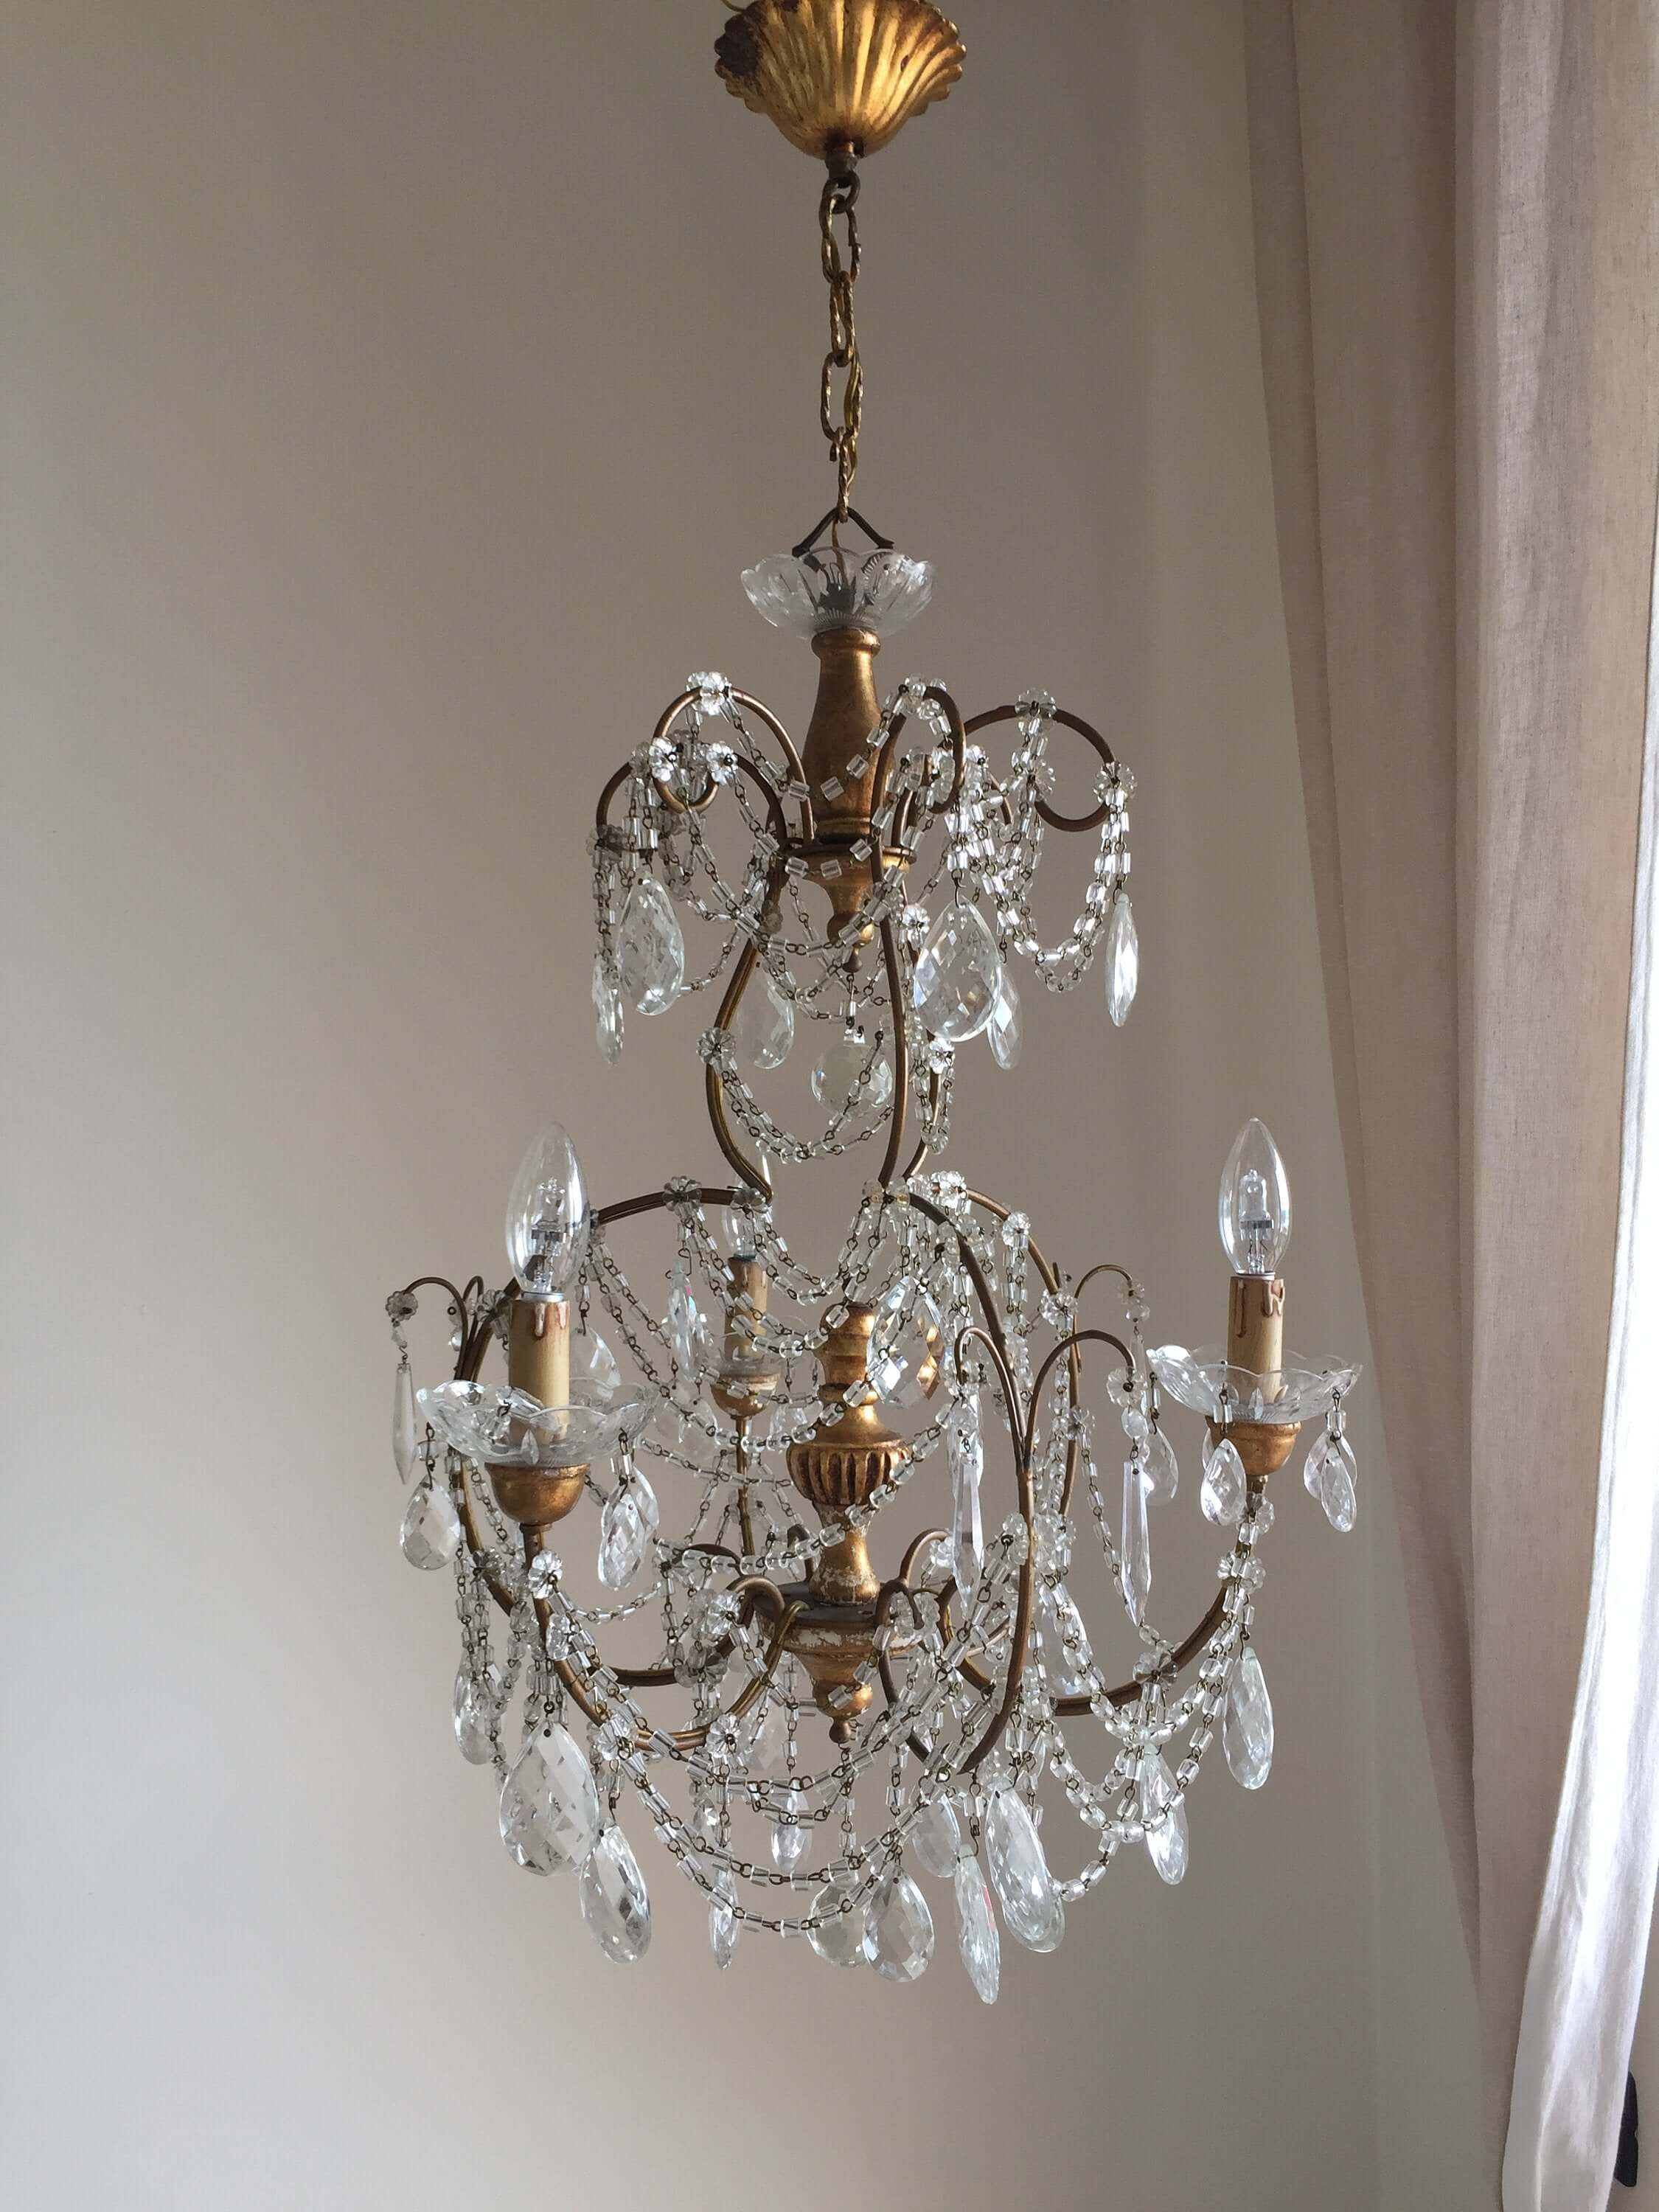 Rare antique Italian 3 lights chandelier